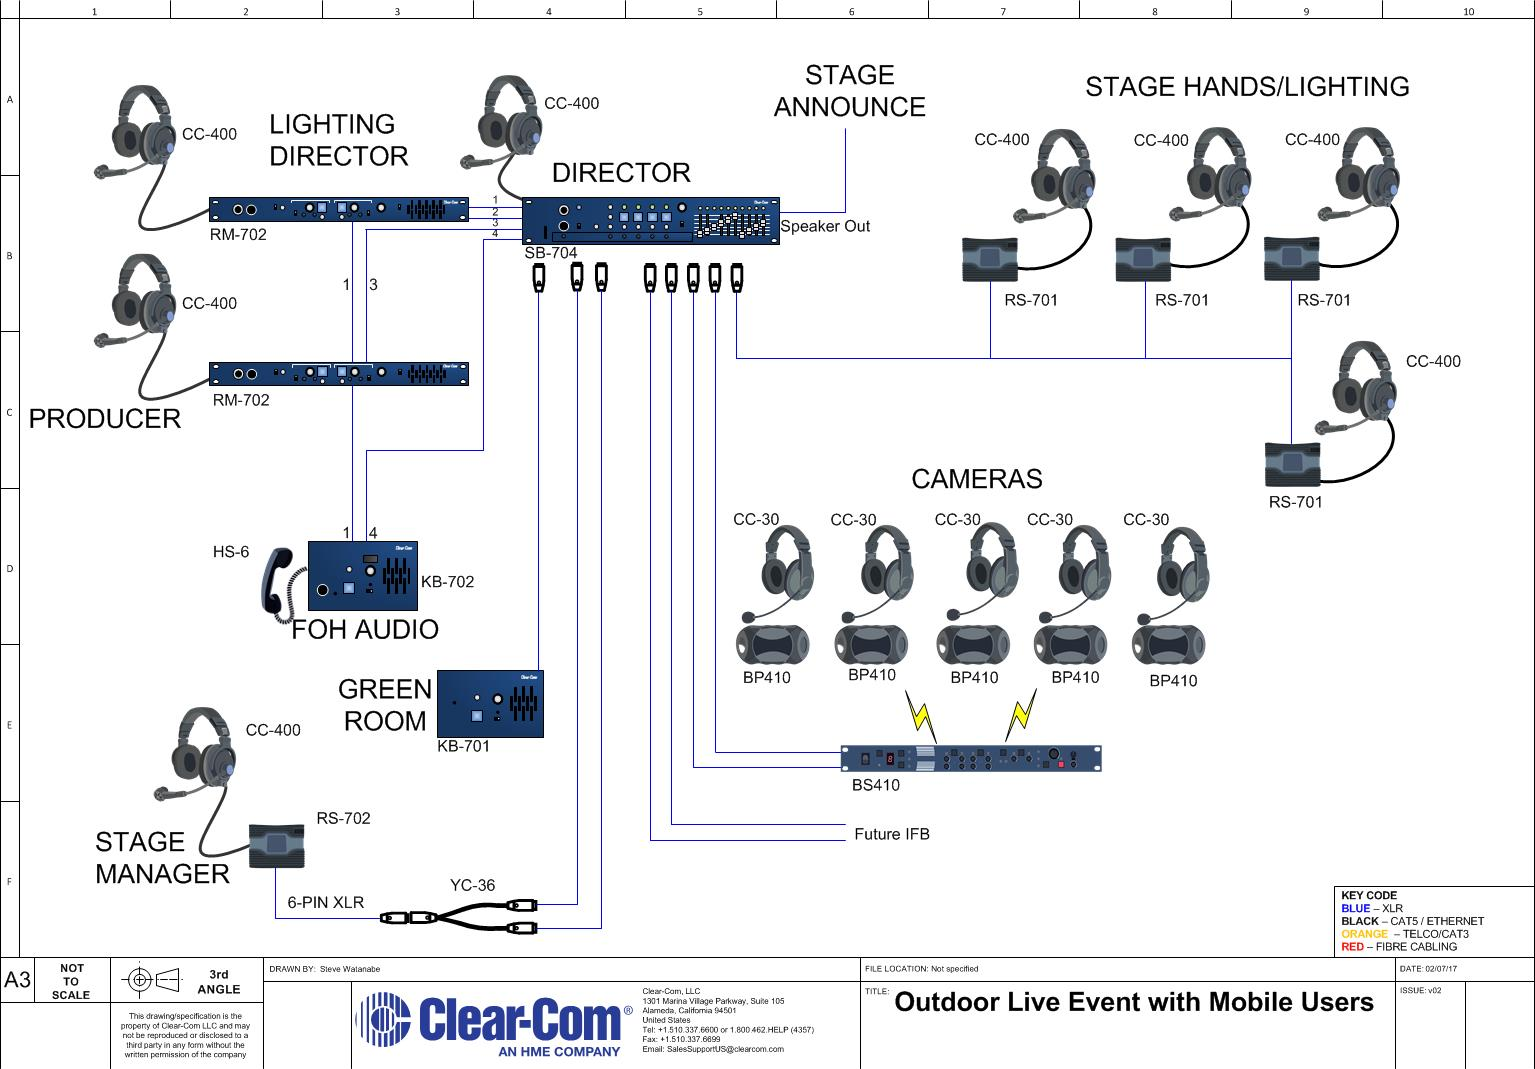 Outdoor Live Event With Partyline And Wireless on Theatre Production Diagram